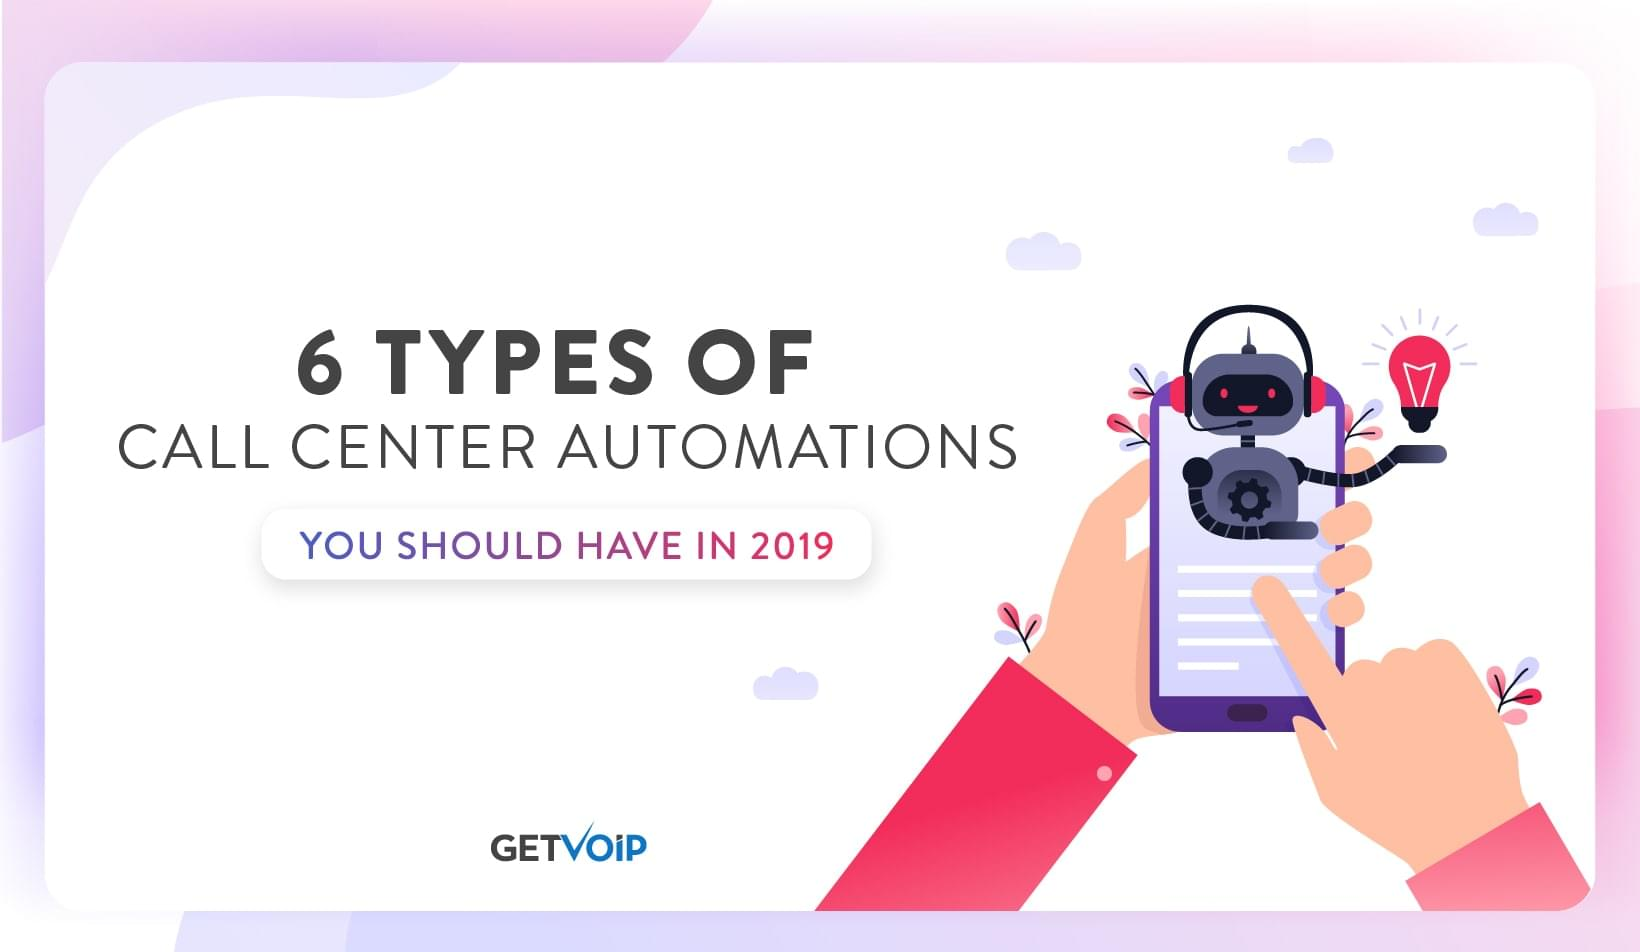 6 Types of Call Center Automations You Should Have